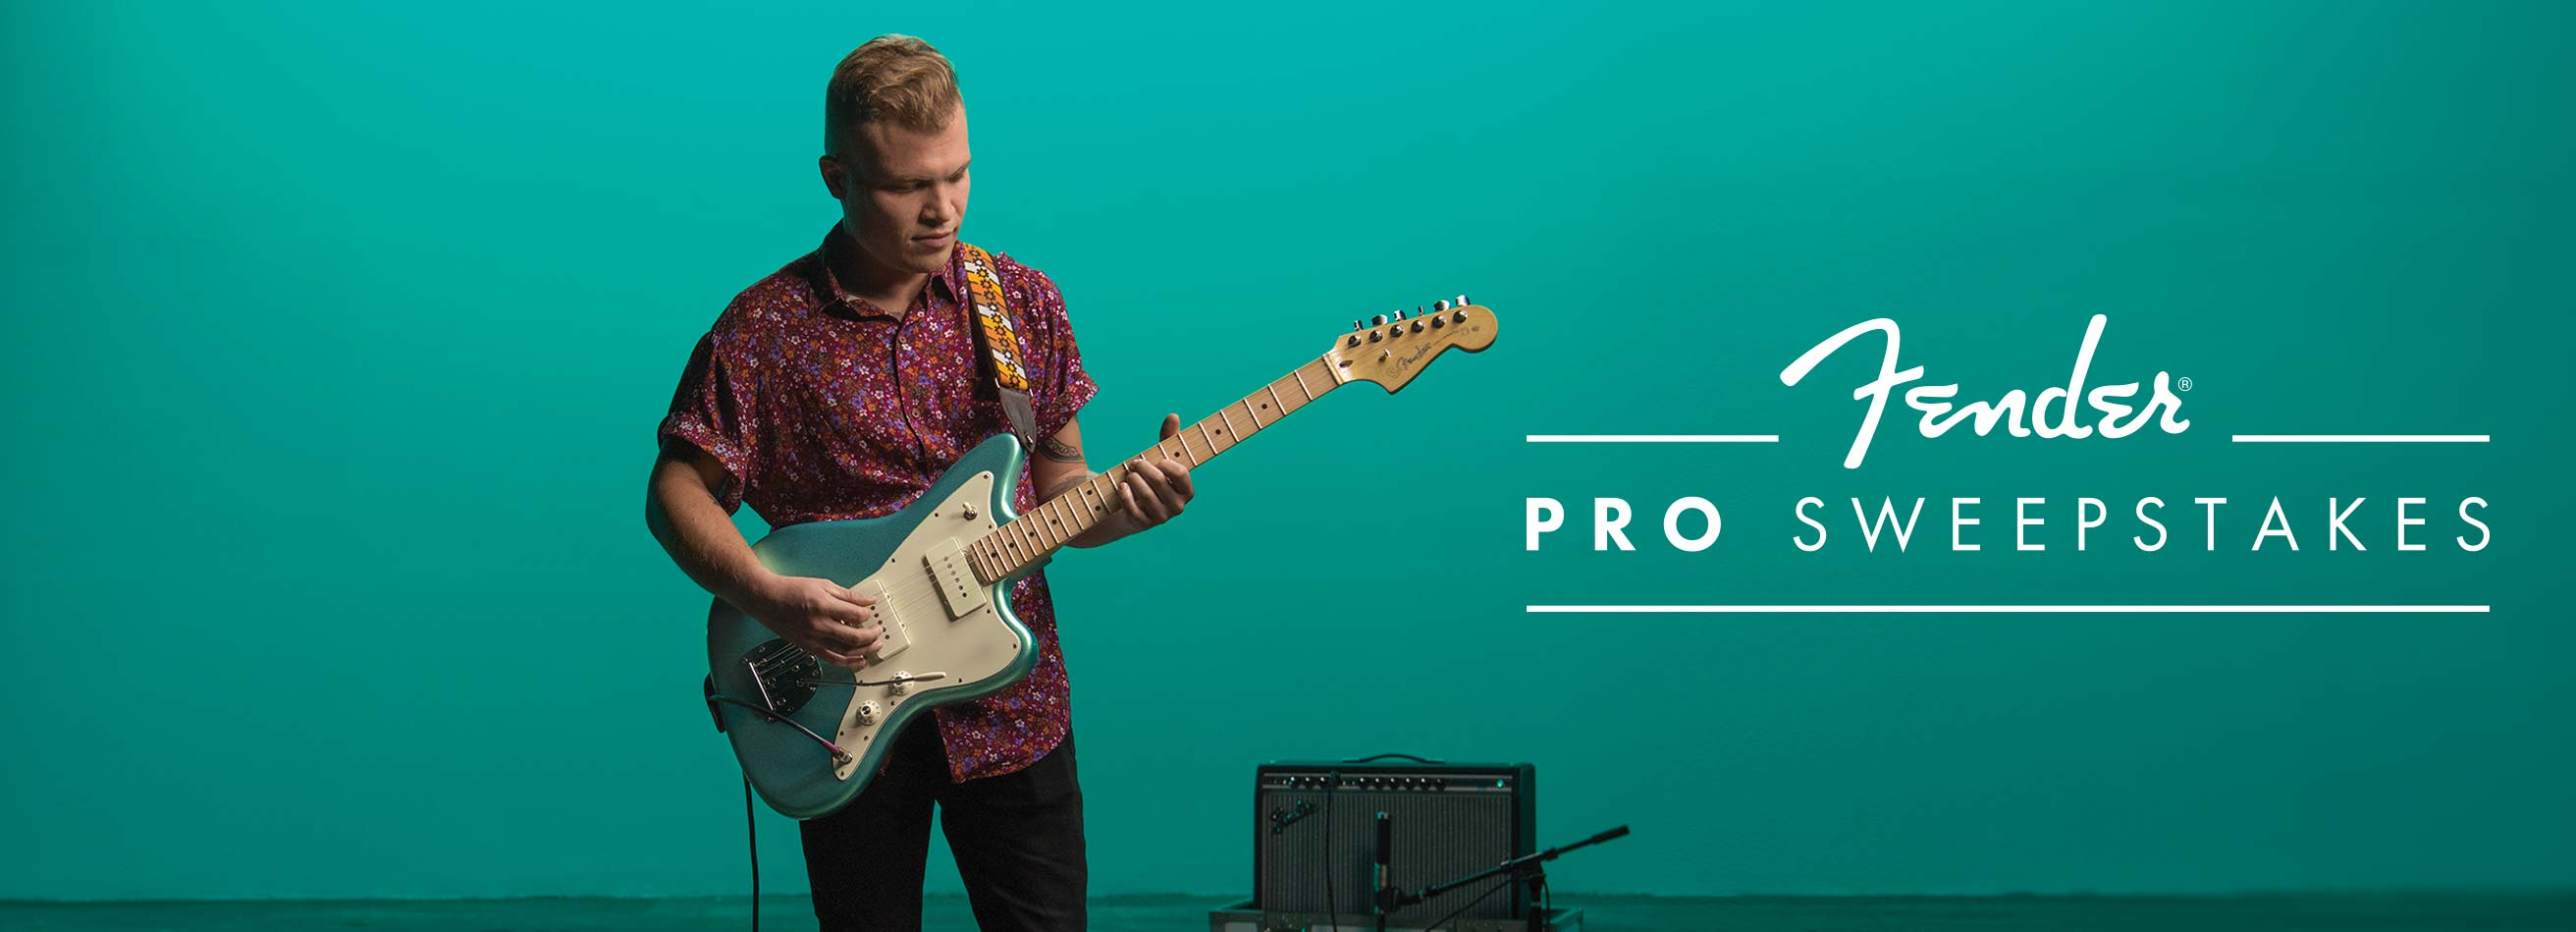 The Fender Pro Sweepstakes